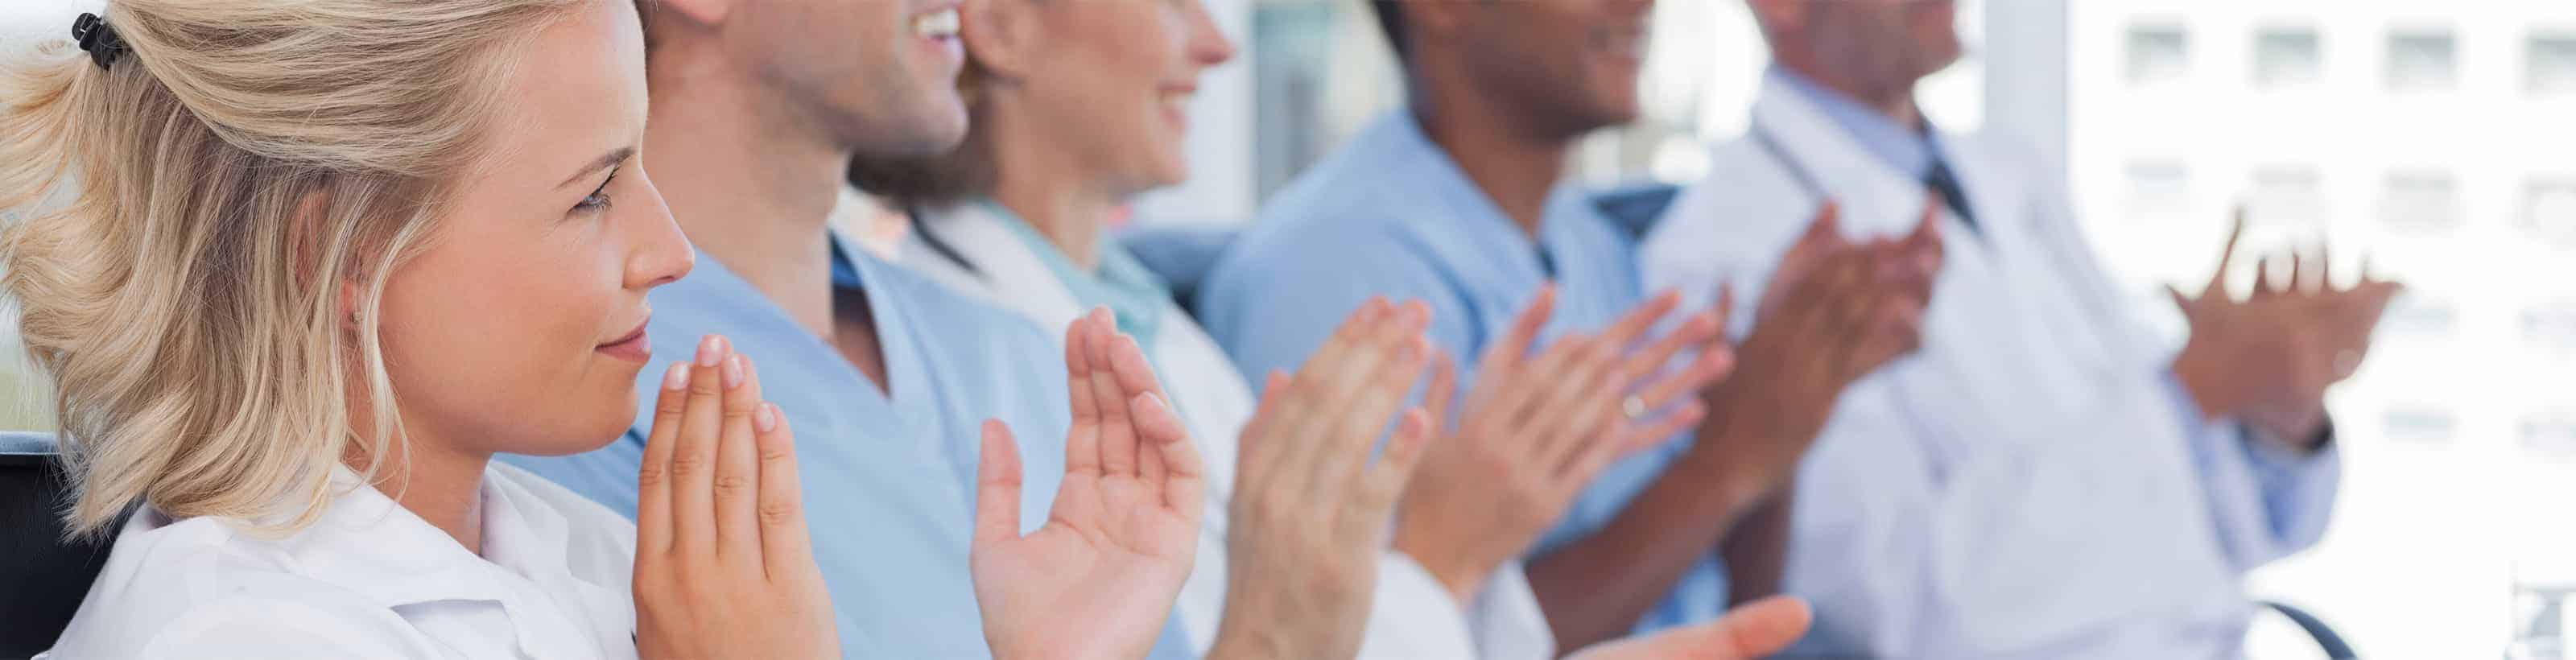 Photo of medical professionals clapping for a presentation